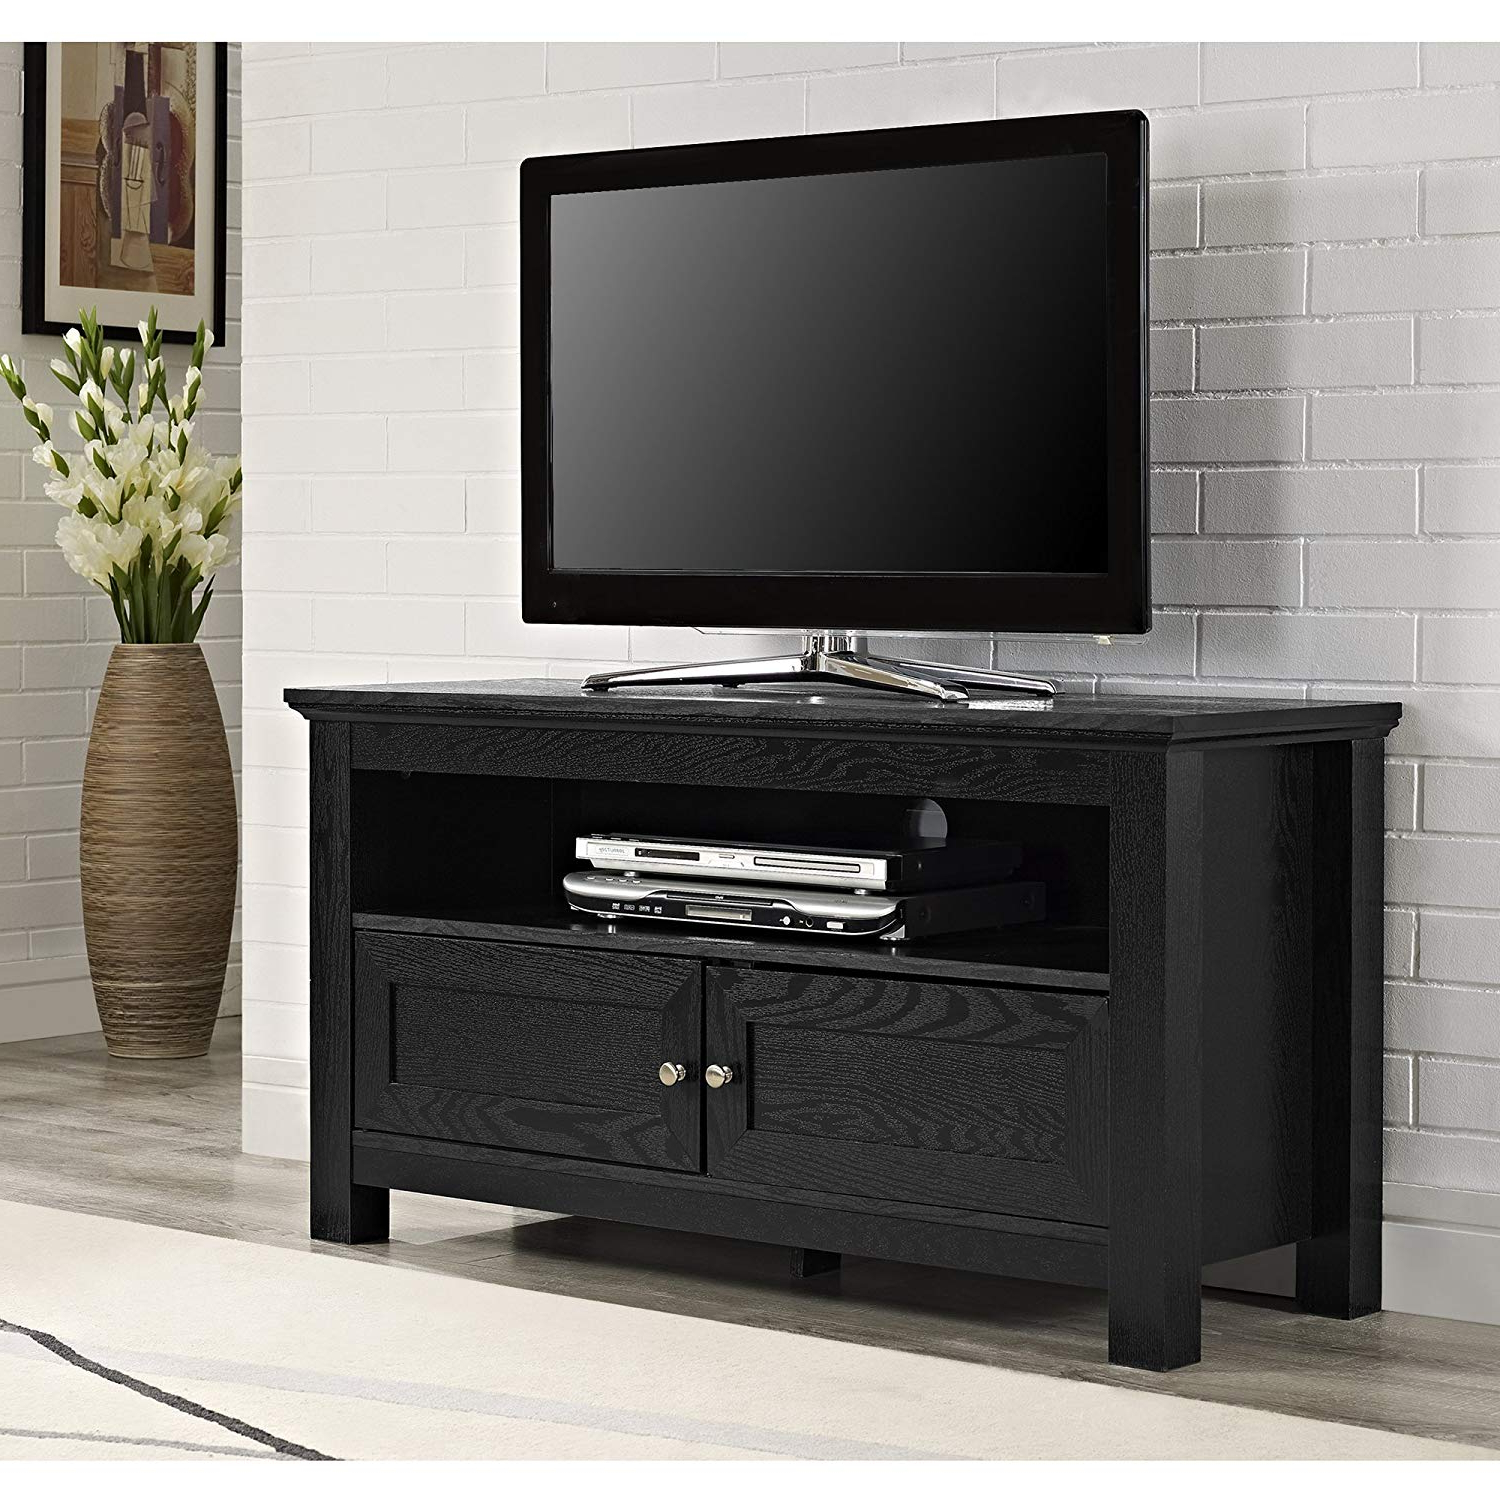 Corner Tv Stands For 46 Inch Flat Screen For Latest Amazon: Walker Edison 44 Inches Cortez Tv Stand Console, Black (View 14 of 20)